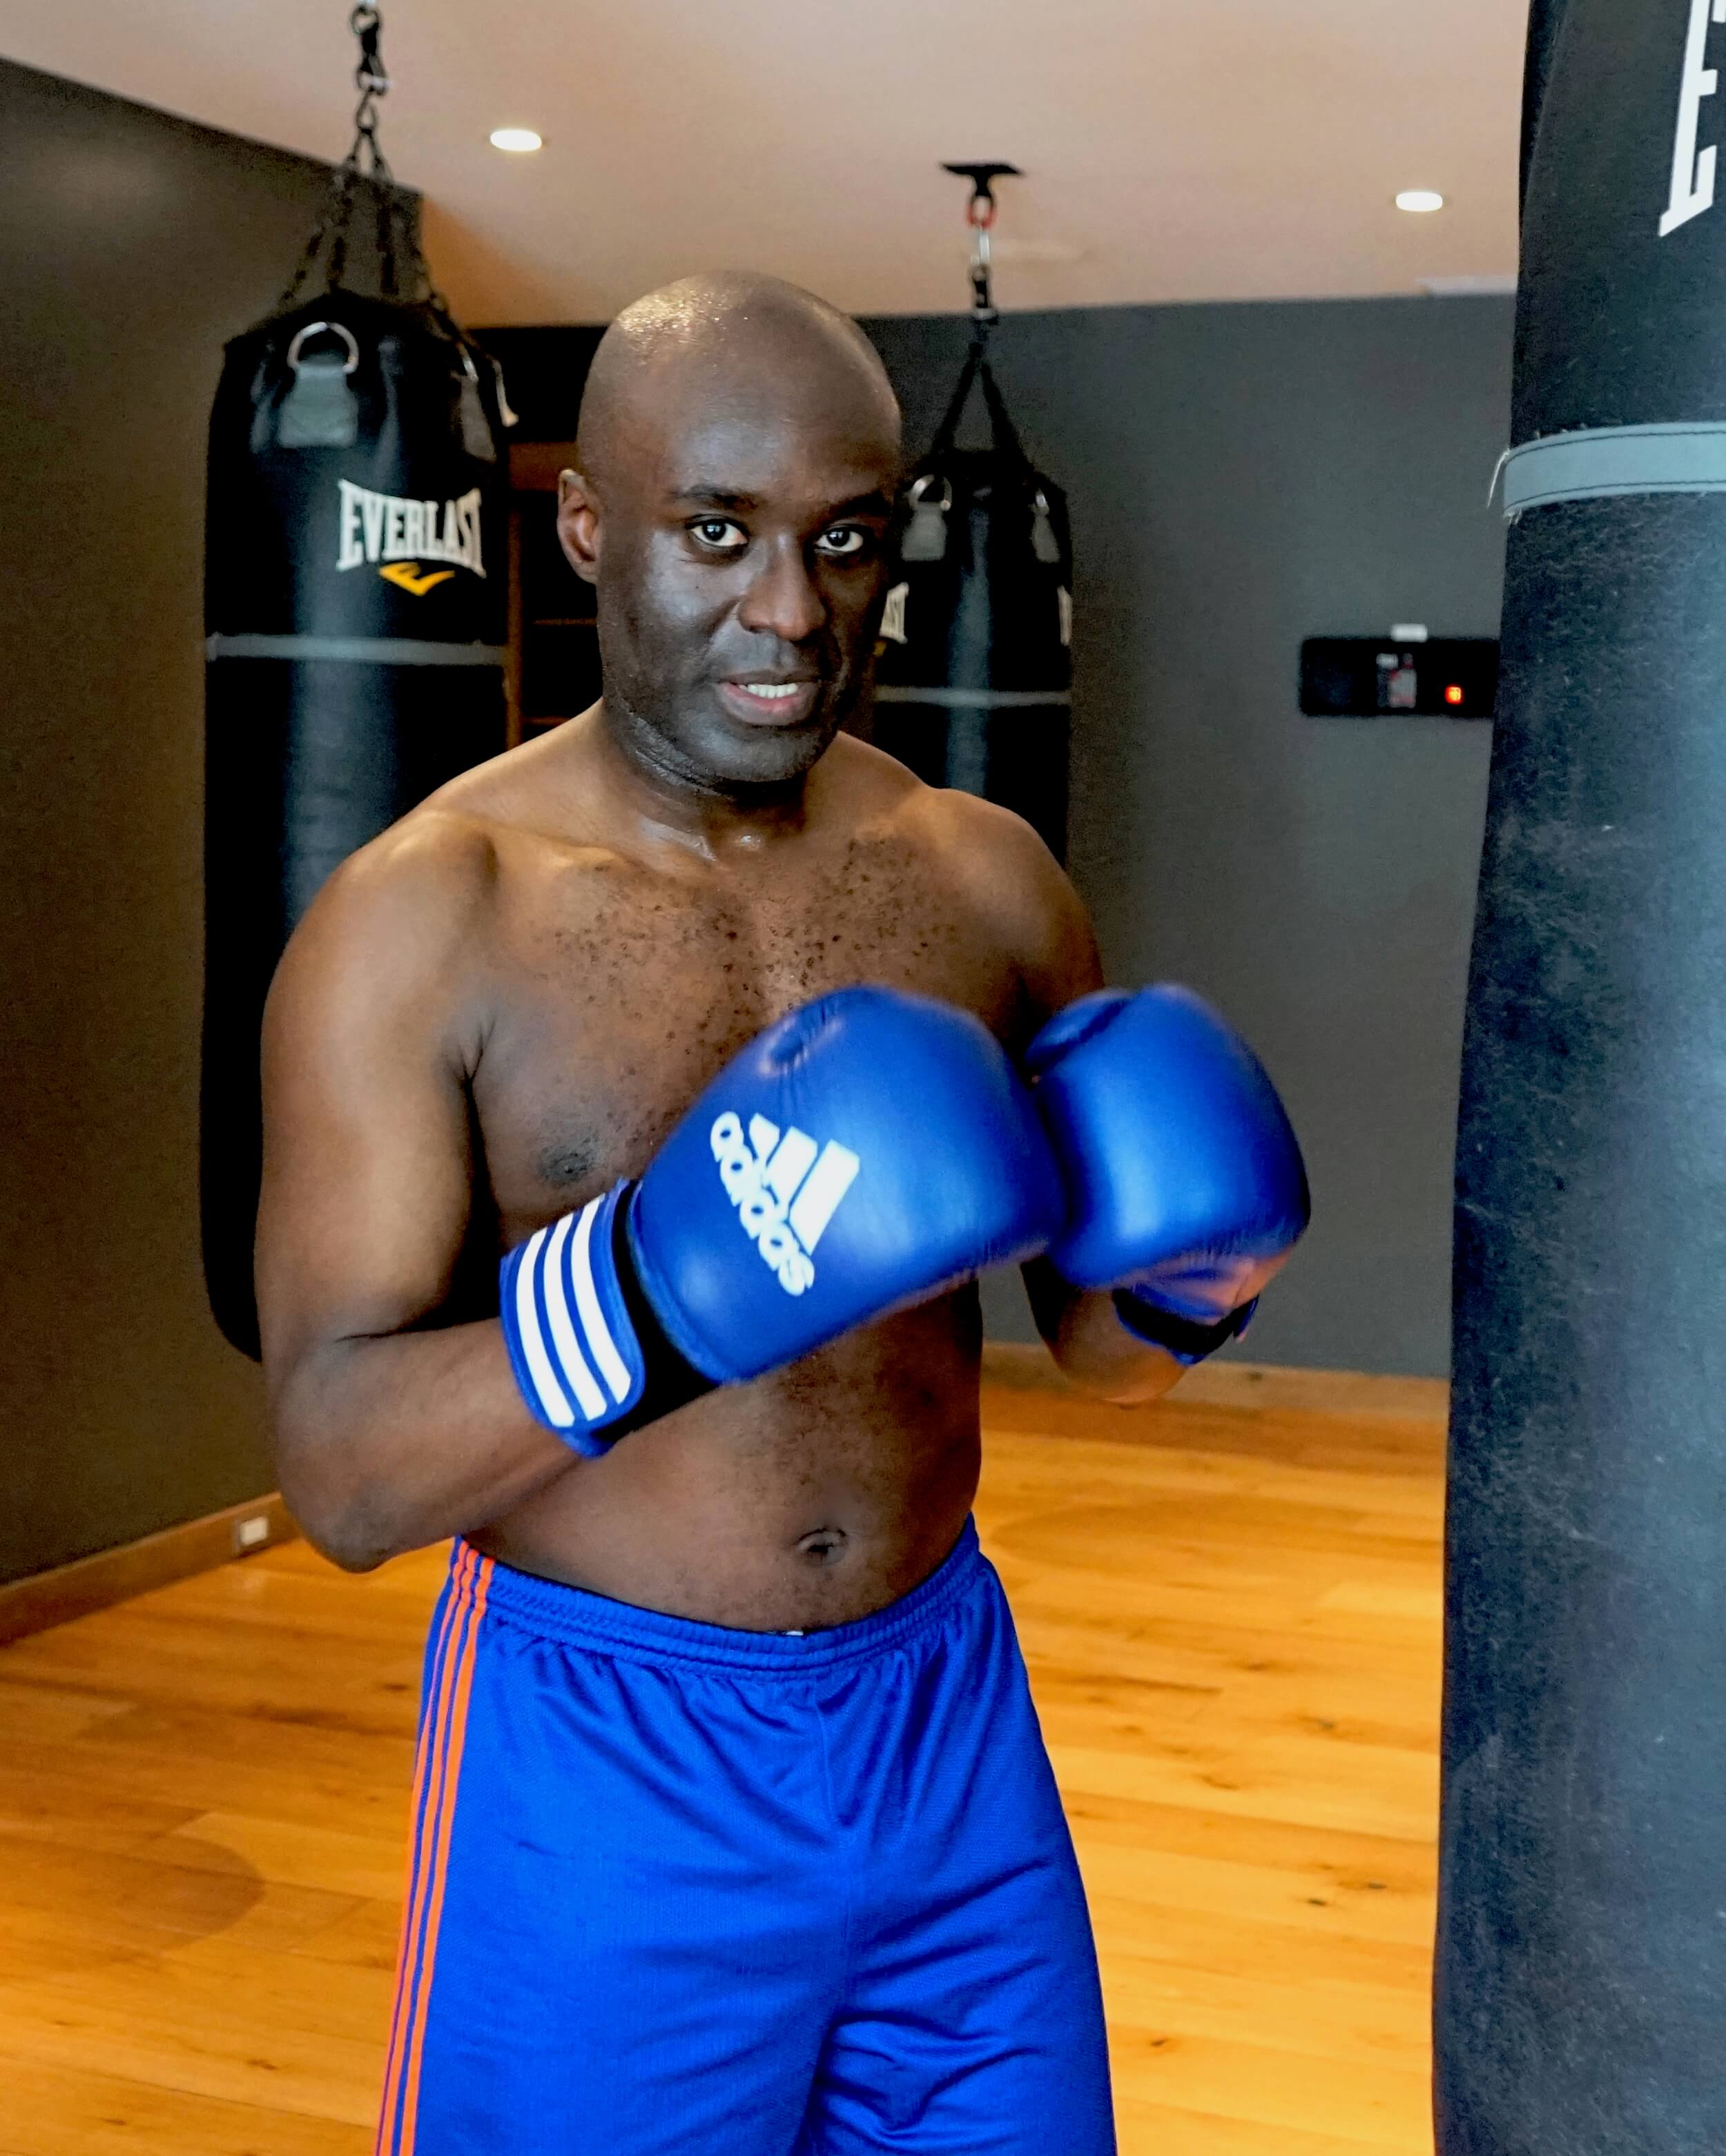 kWASI'S STORY - Kwasi had a long lasting injury in his left hip limiting his movement and mobility. See how acupuncture helped get him back in the ring!Watch Kwasi's video